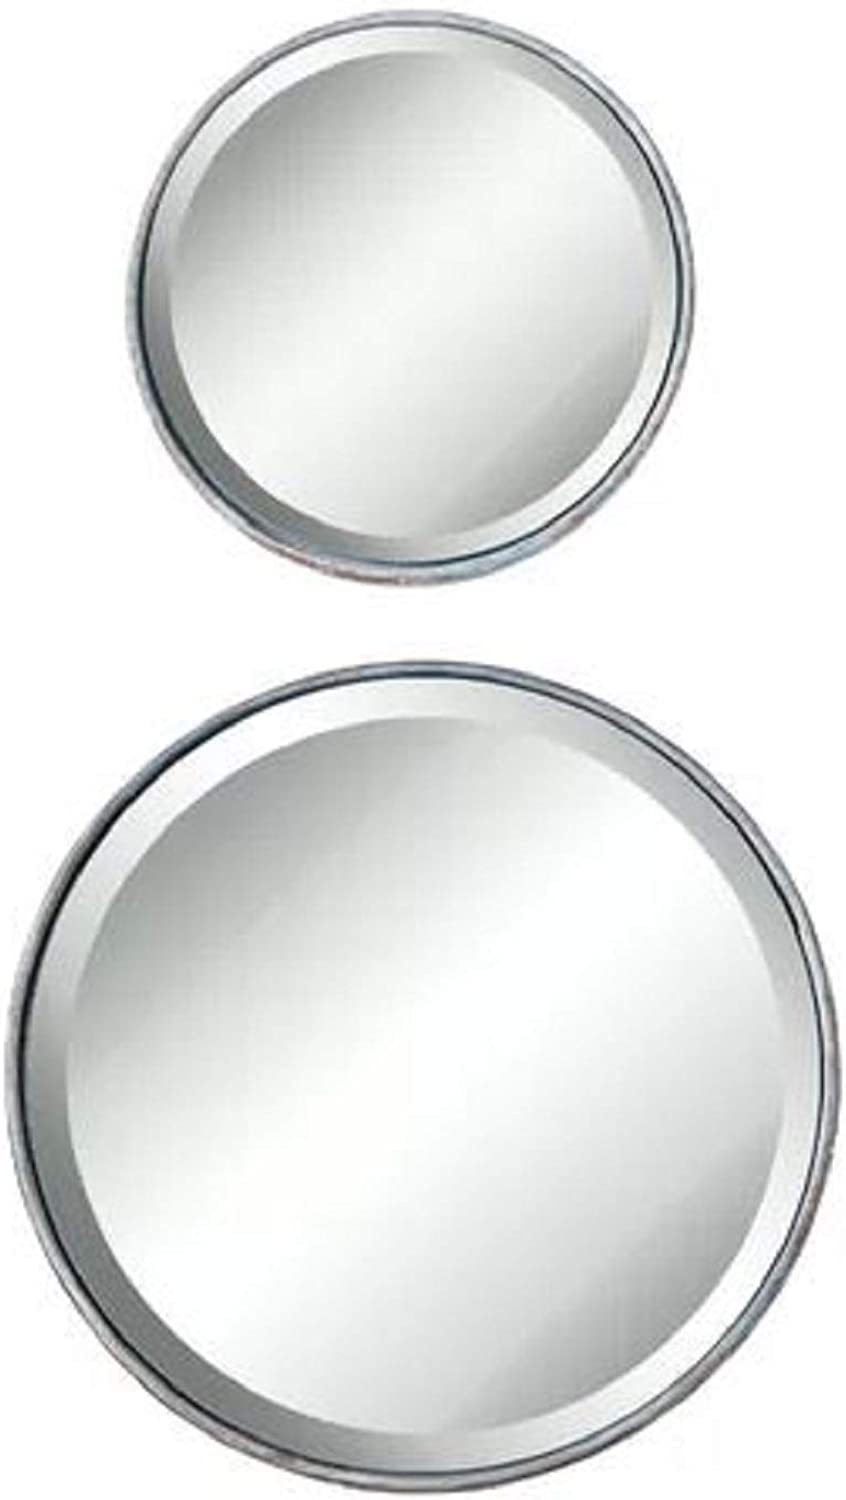 House Decoration Modern Accent Mirror. Justis Small Round Metal House Decoration Modern Accent Mirror Distressed Metal Beveled Glass Wall Mounted Silver